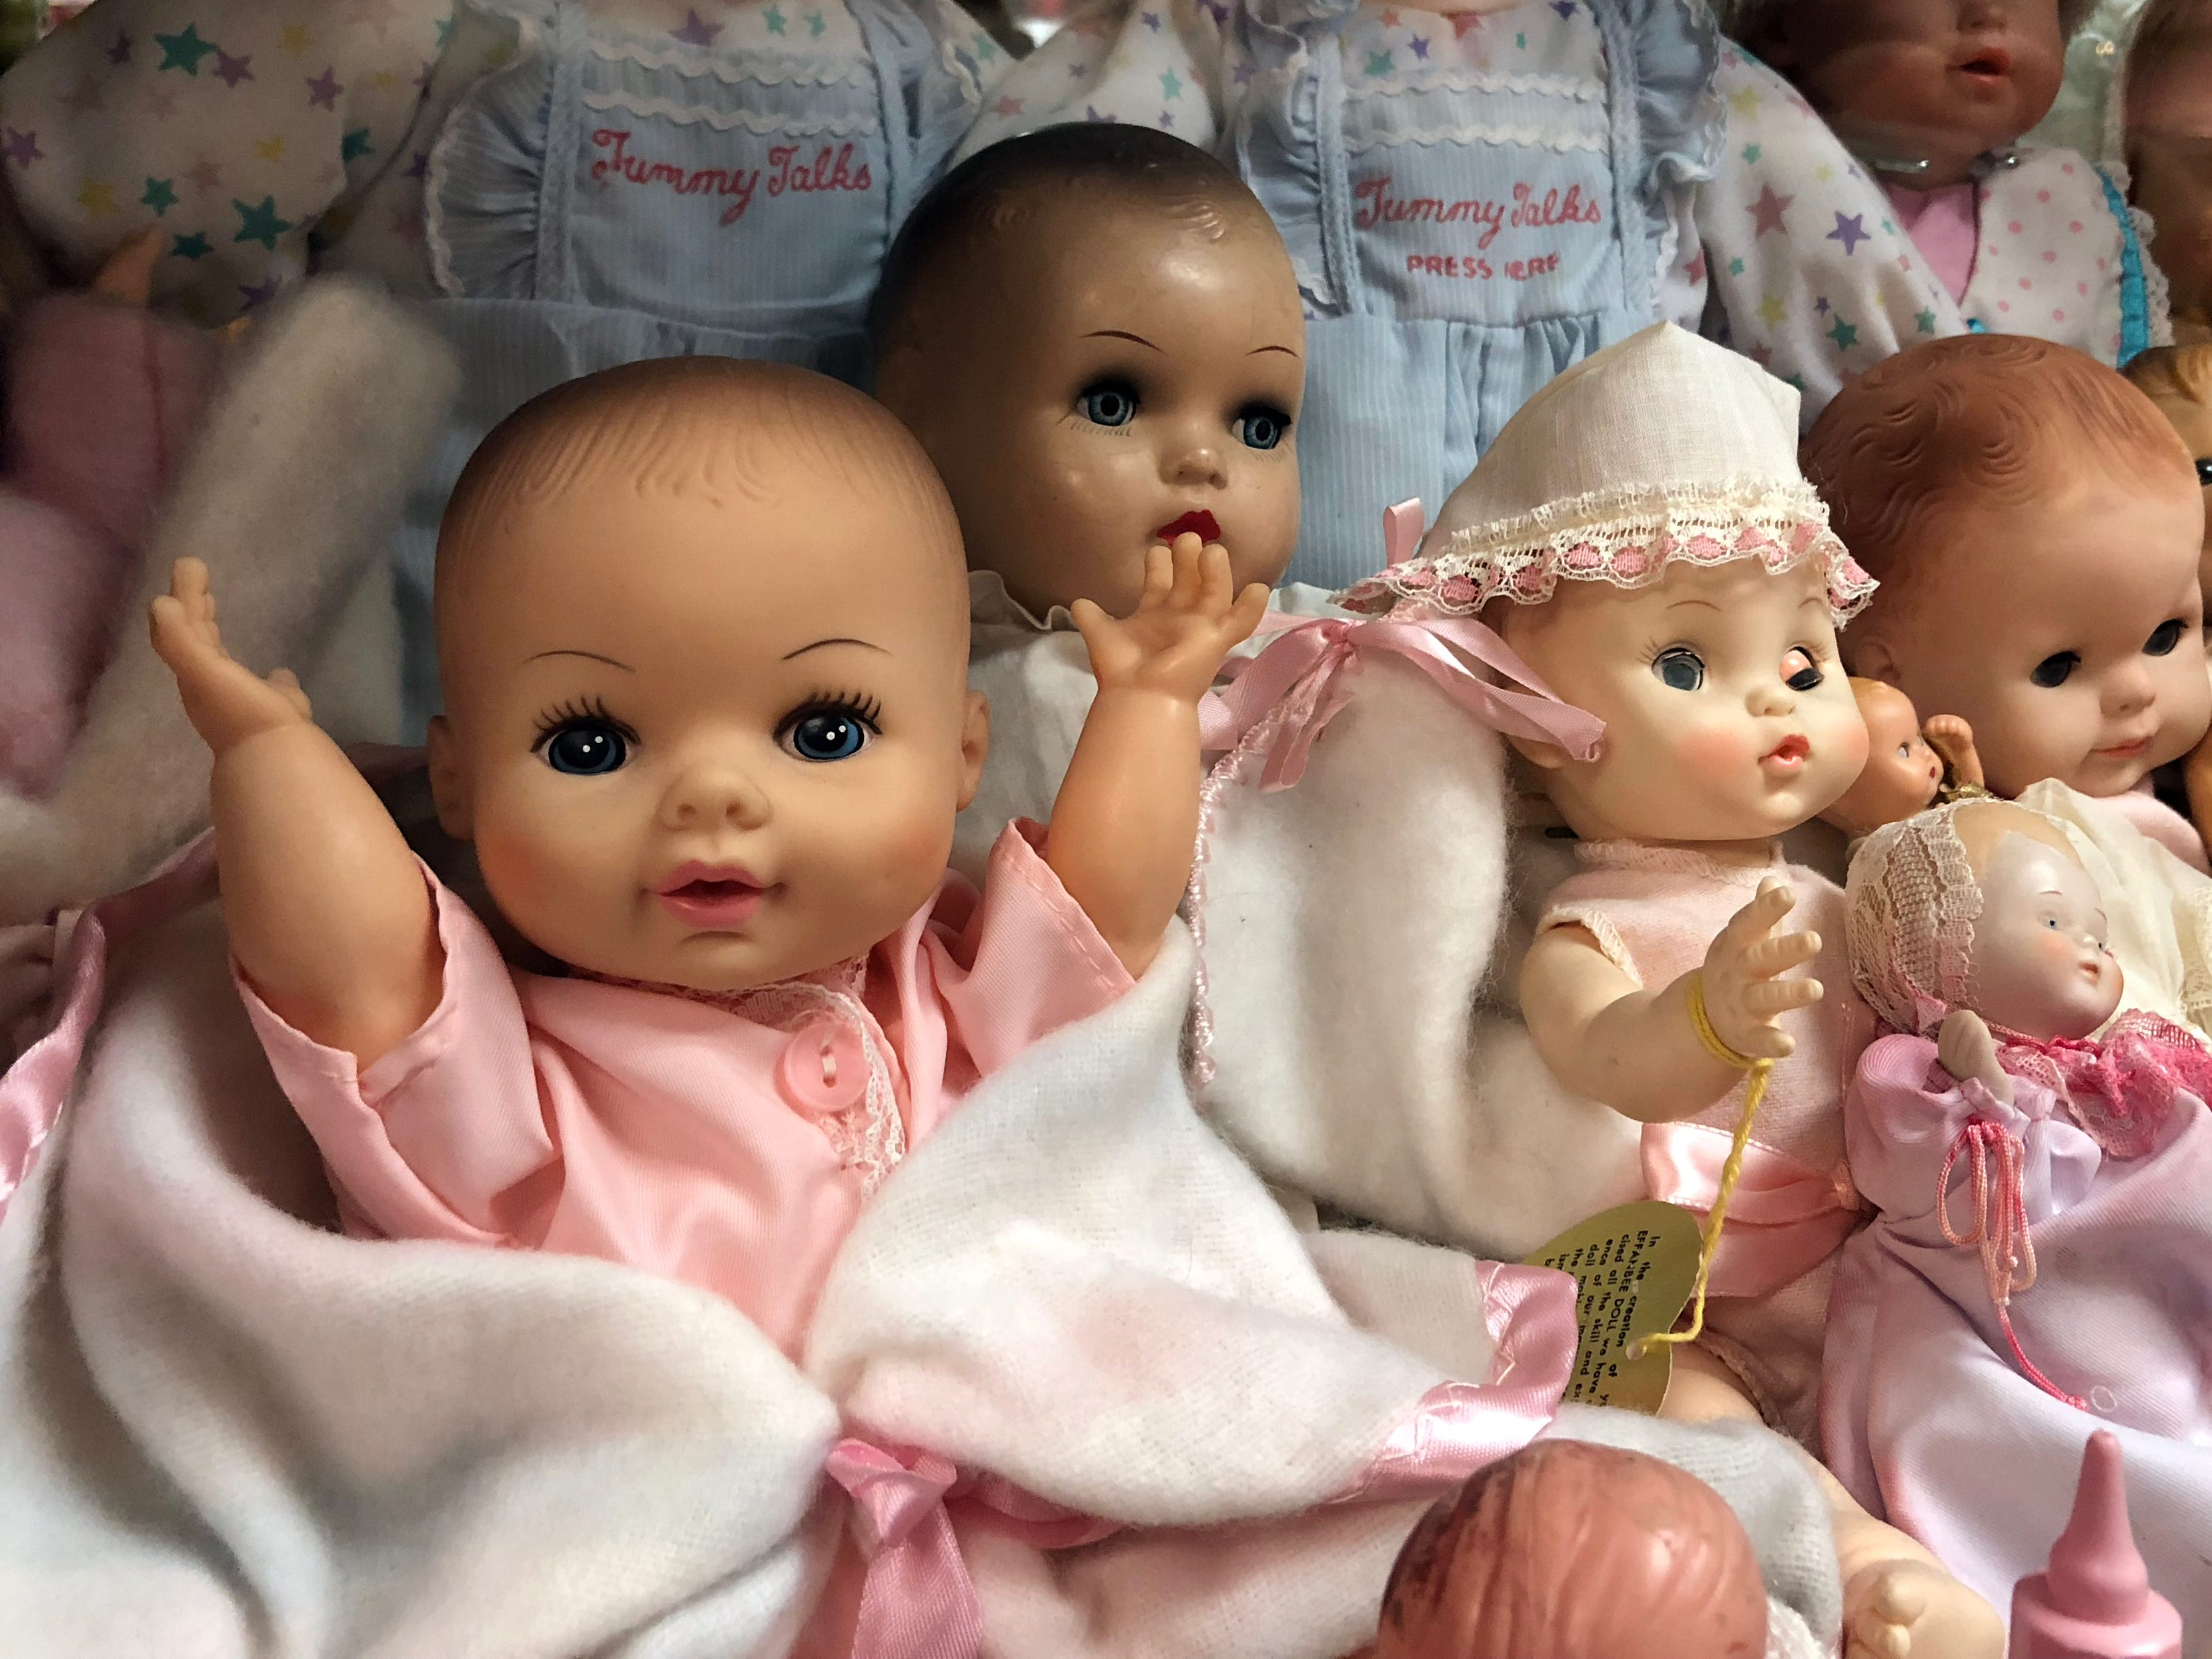 If you want to explore the ghosts of Christmas toys past, you could make your way to the World's Largest Toy Museum and ogle Lincoln Logs, Cracker Jack prizes, antique dolls, a gaggle of toy guns, and more than a million other playthings.